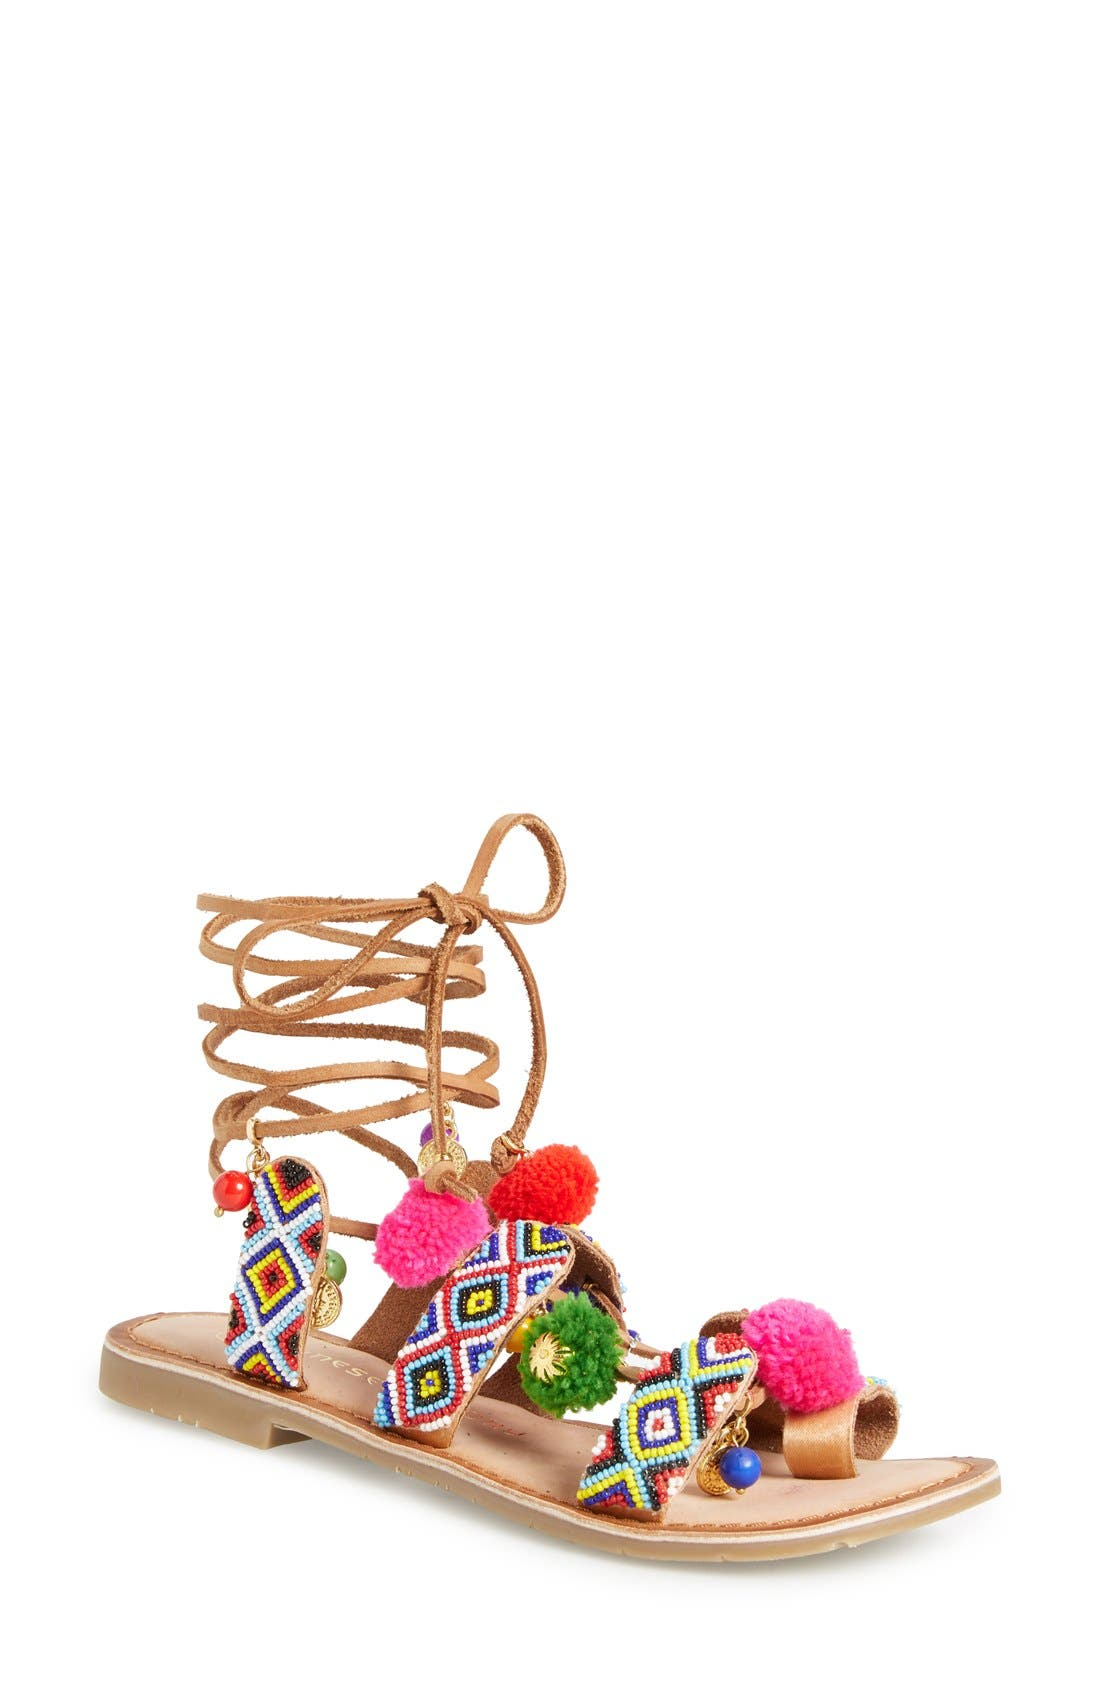 Alternate Image 1 Selected - Chinese Laundry 'Posh' Embellished Lace-Up Sandal (Women)